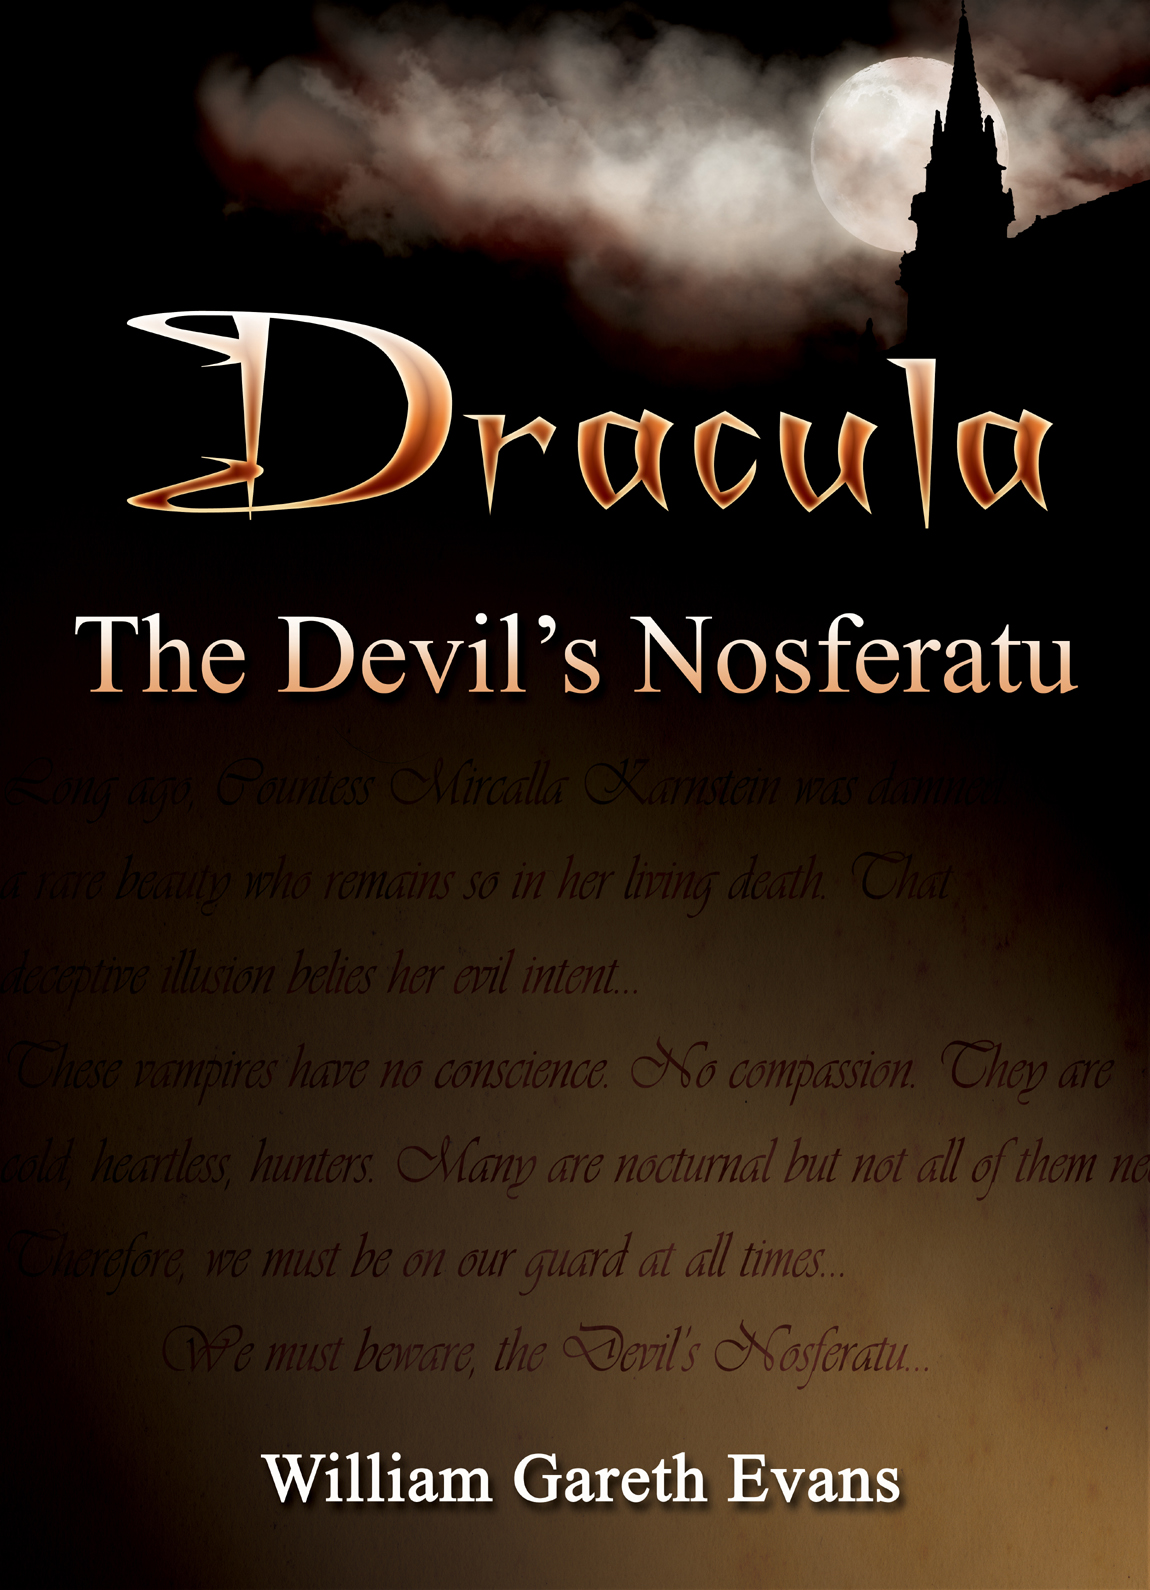 Dracula - The Devil's Nosferatu By: William Gareth Evans